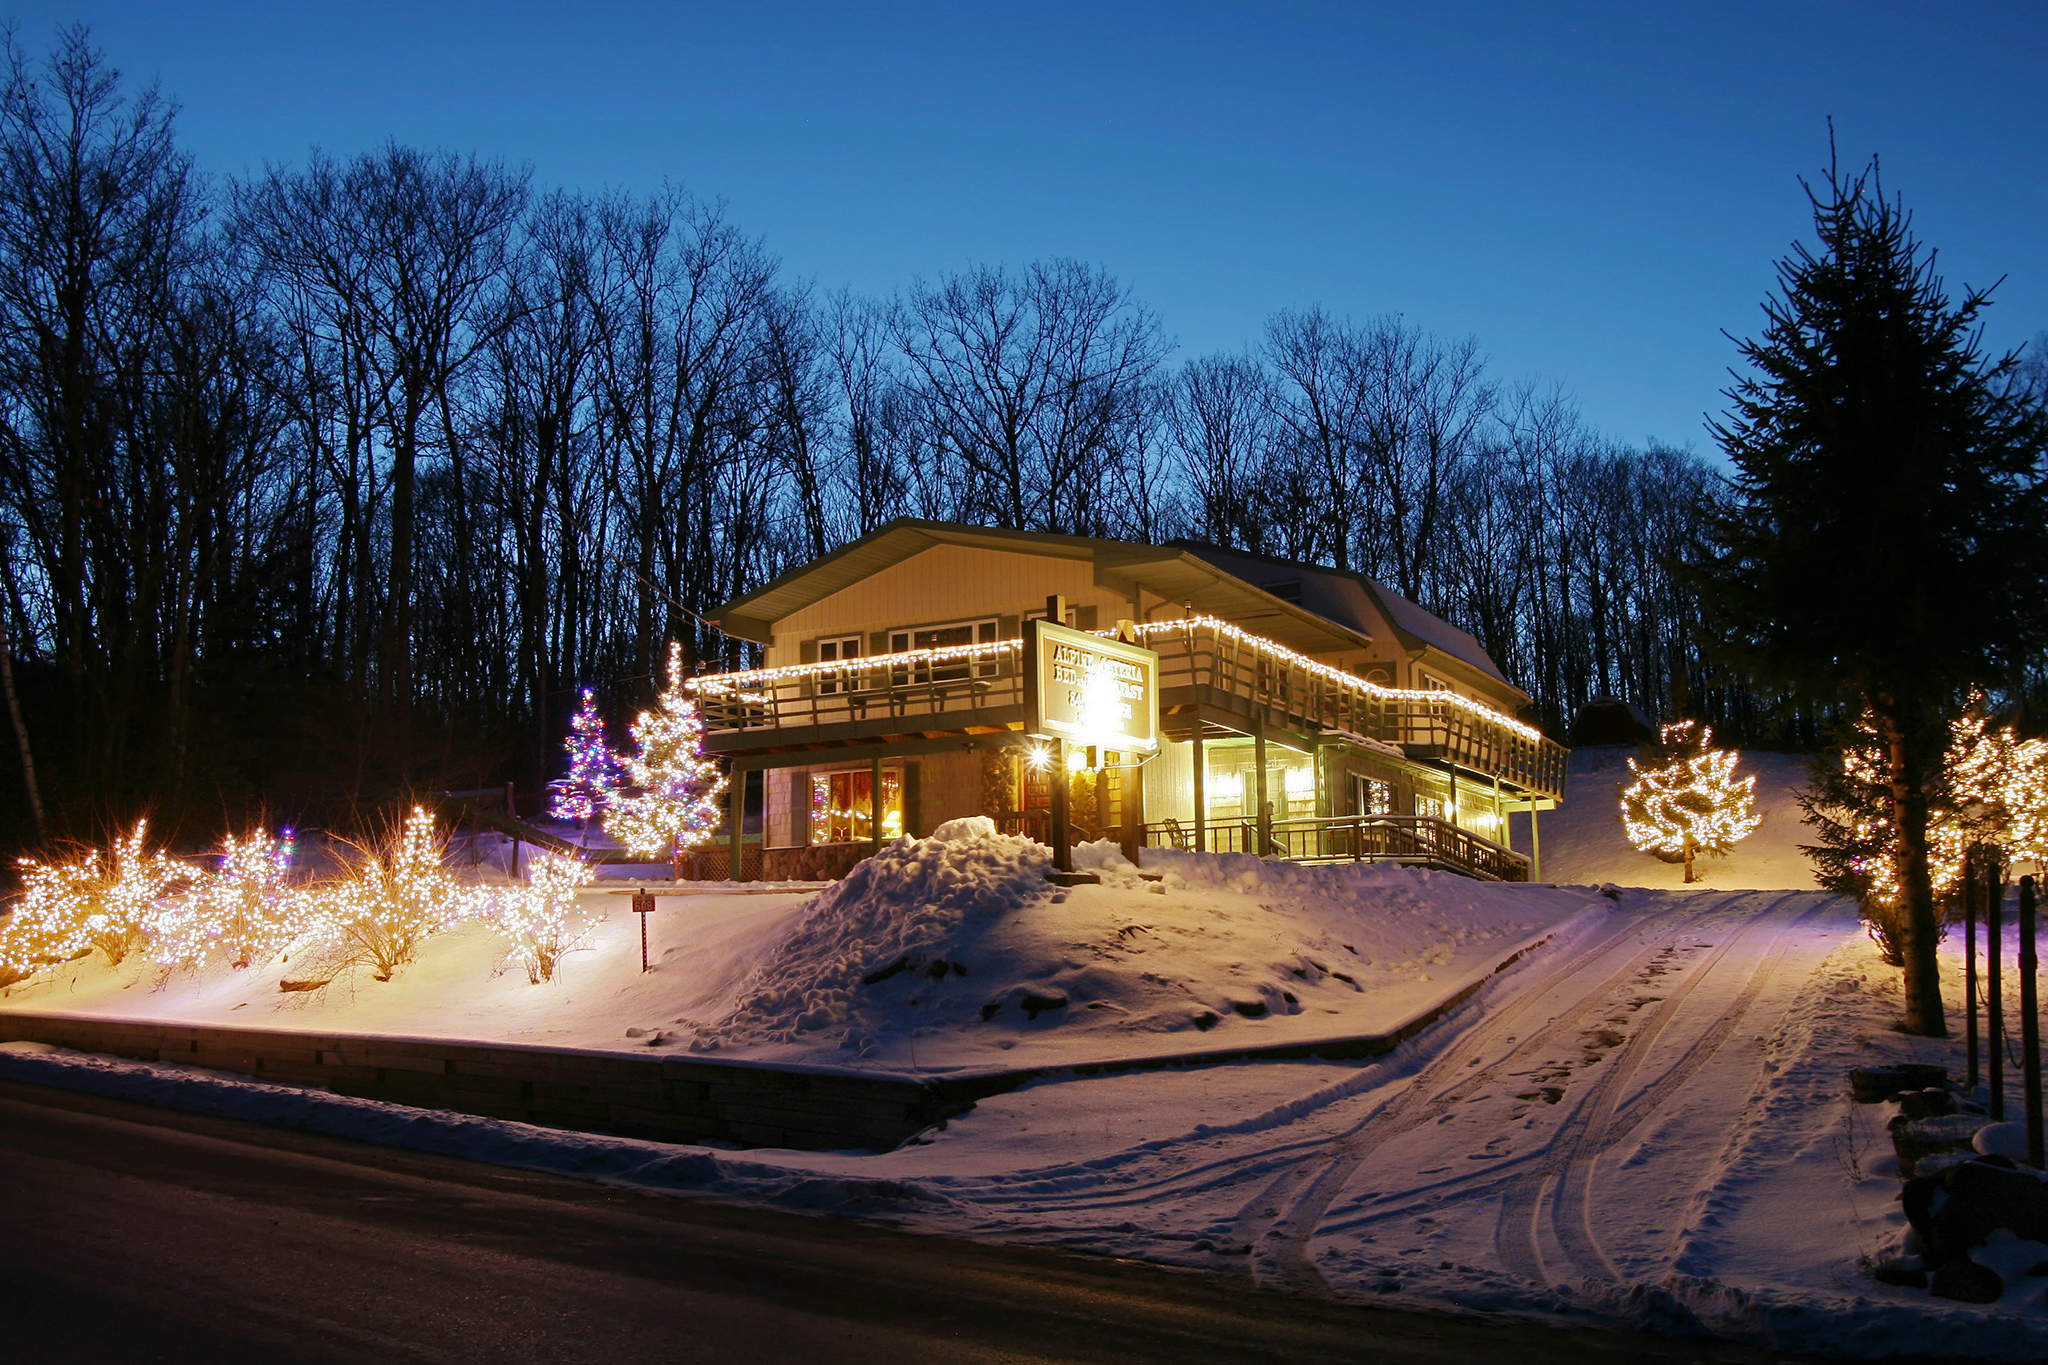 winter getaways from NYC